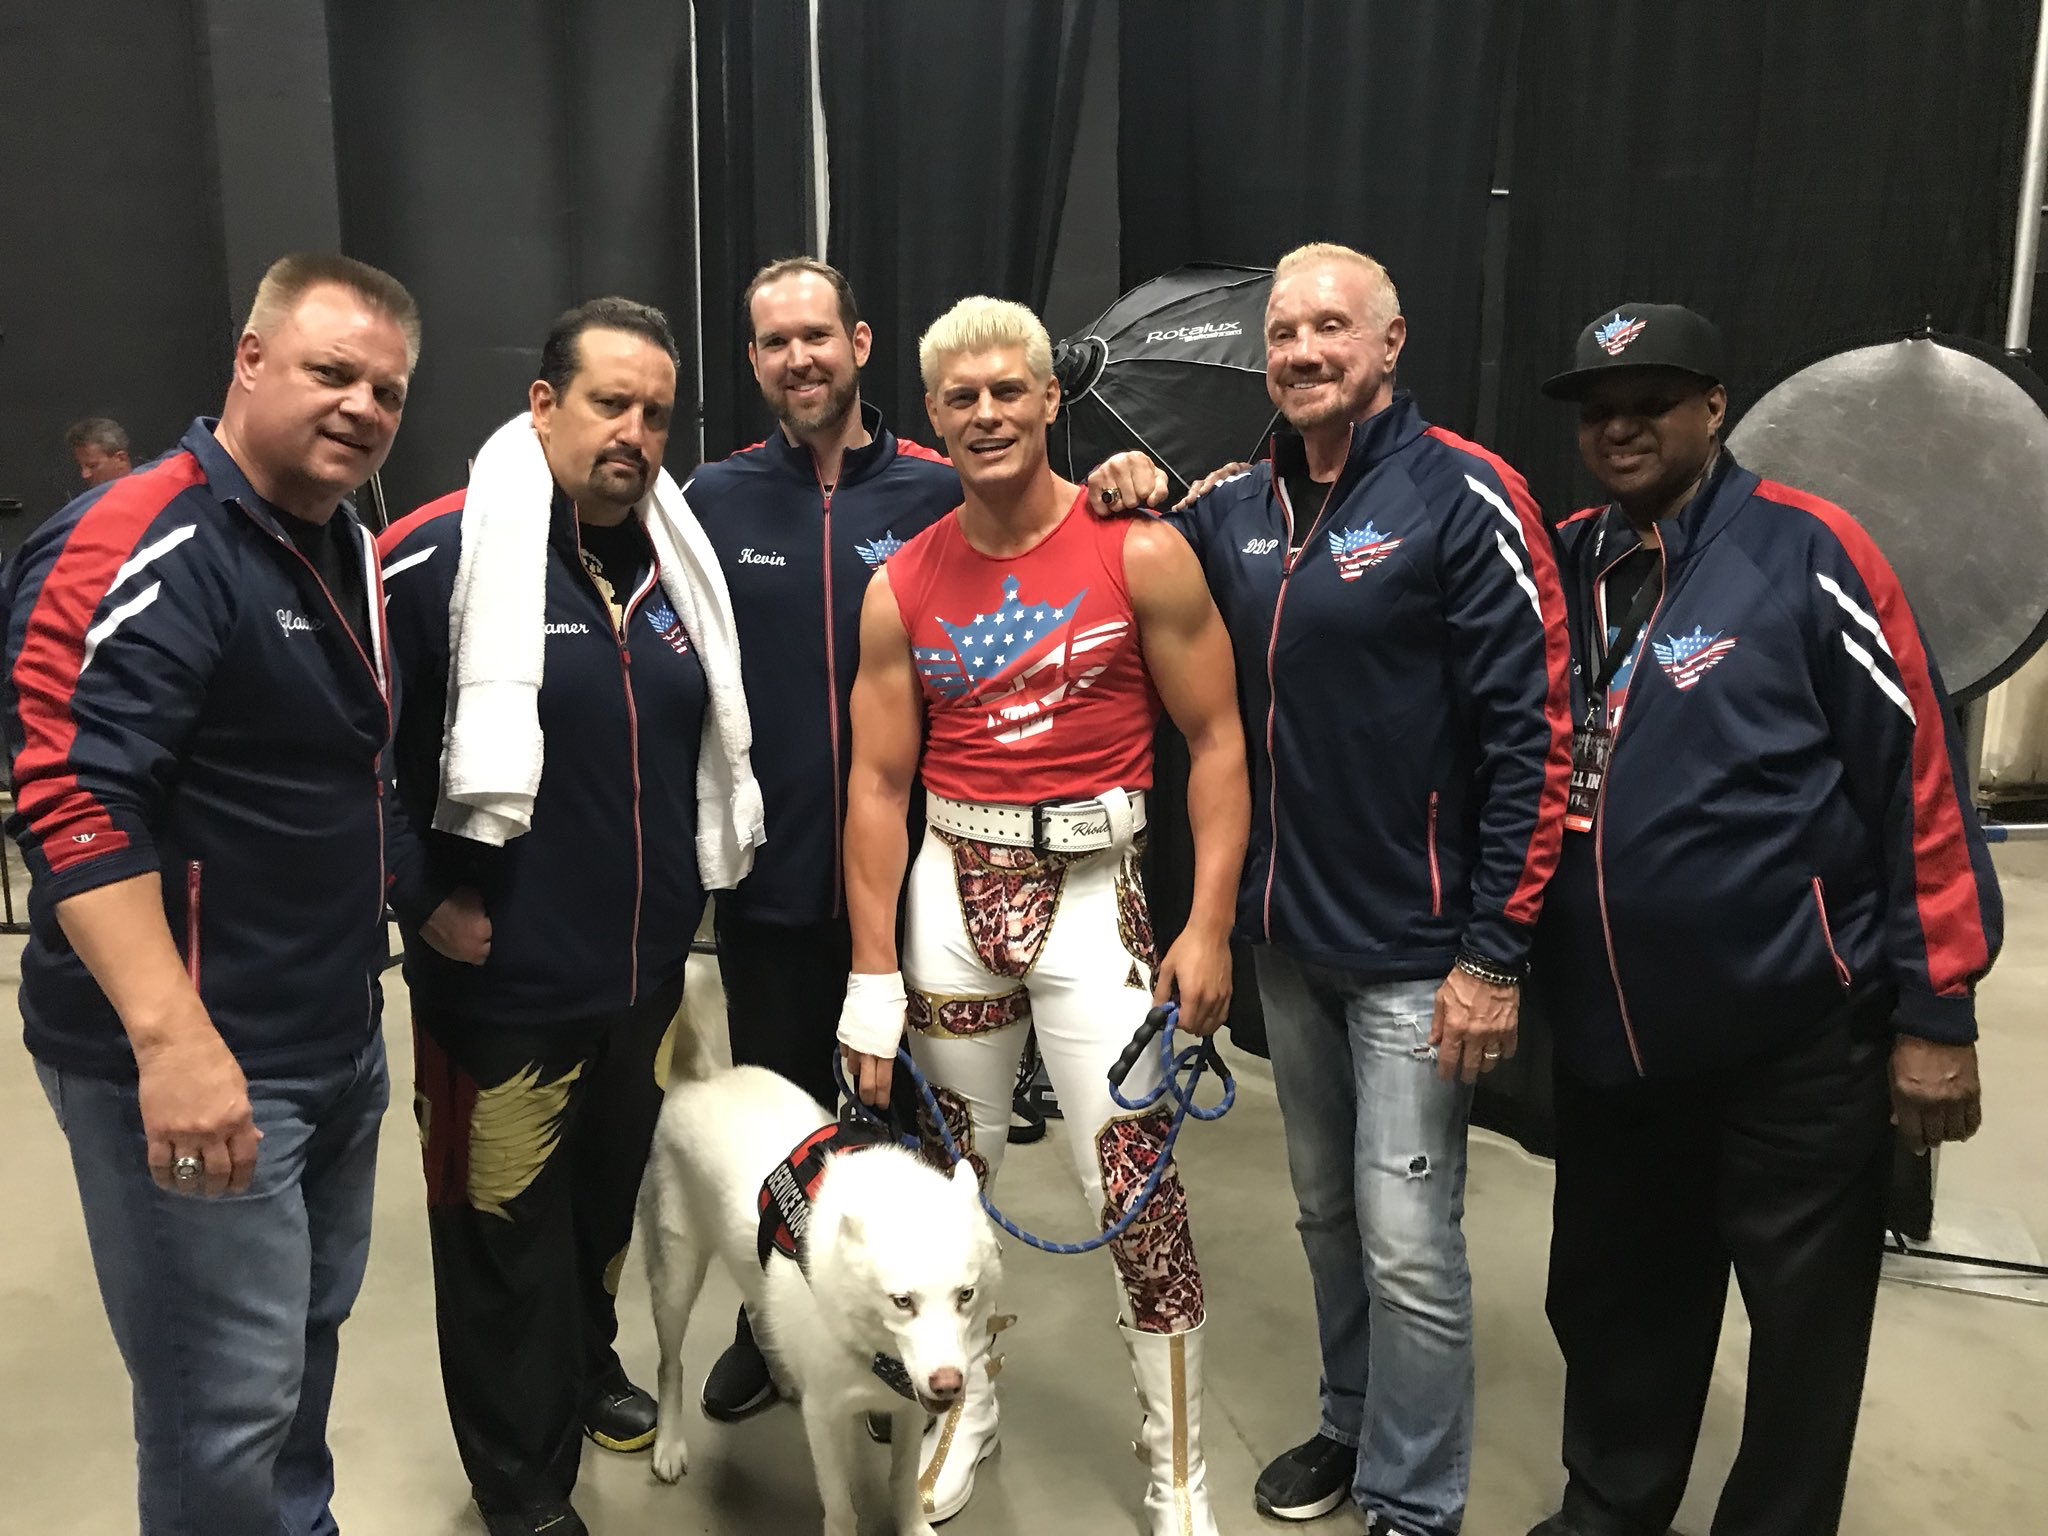 Cody Rhodes Comments On Pro Wrestling Future After 'ALL IN'